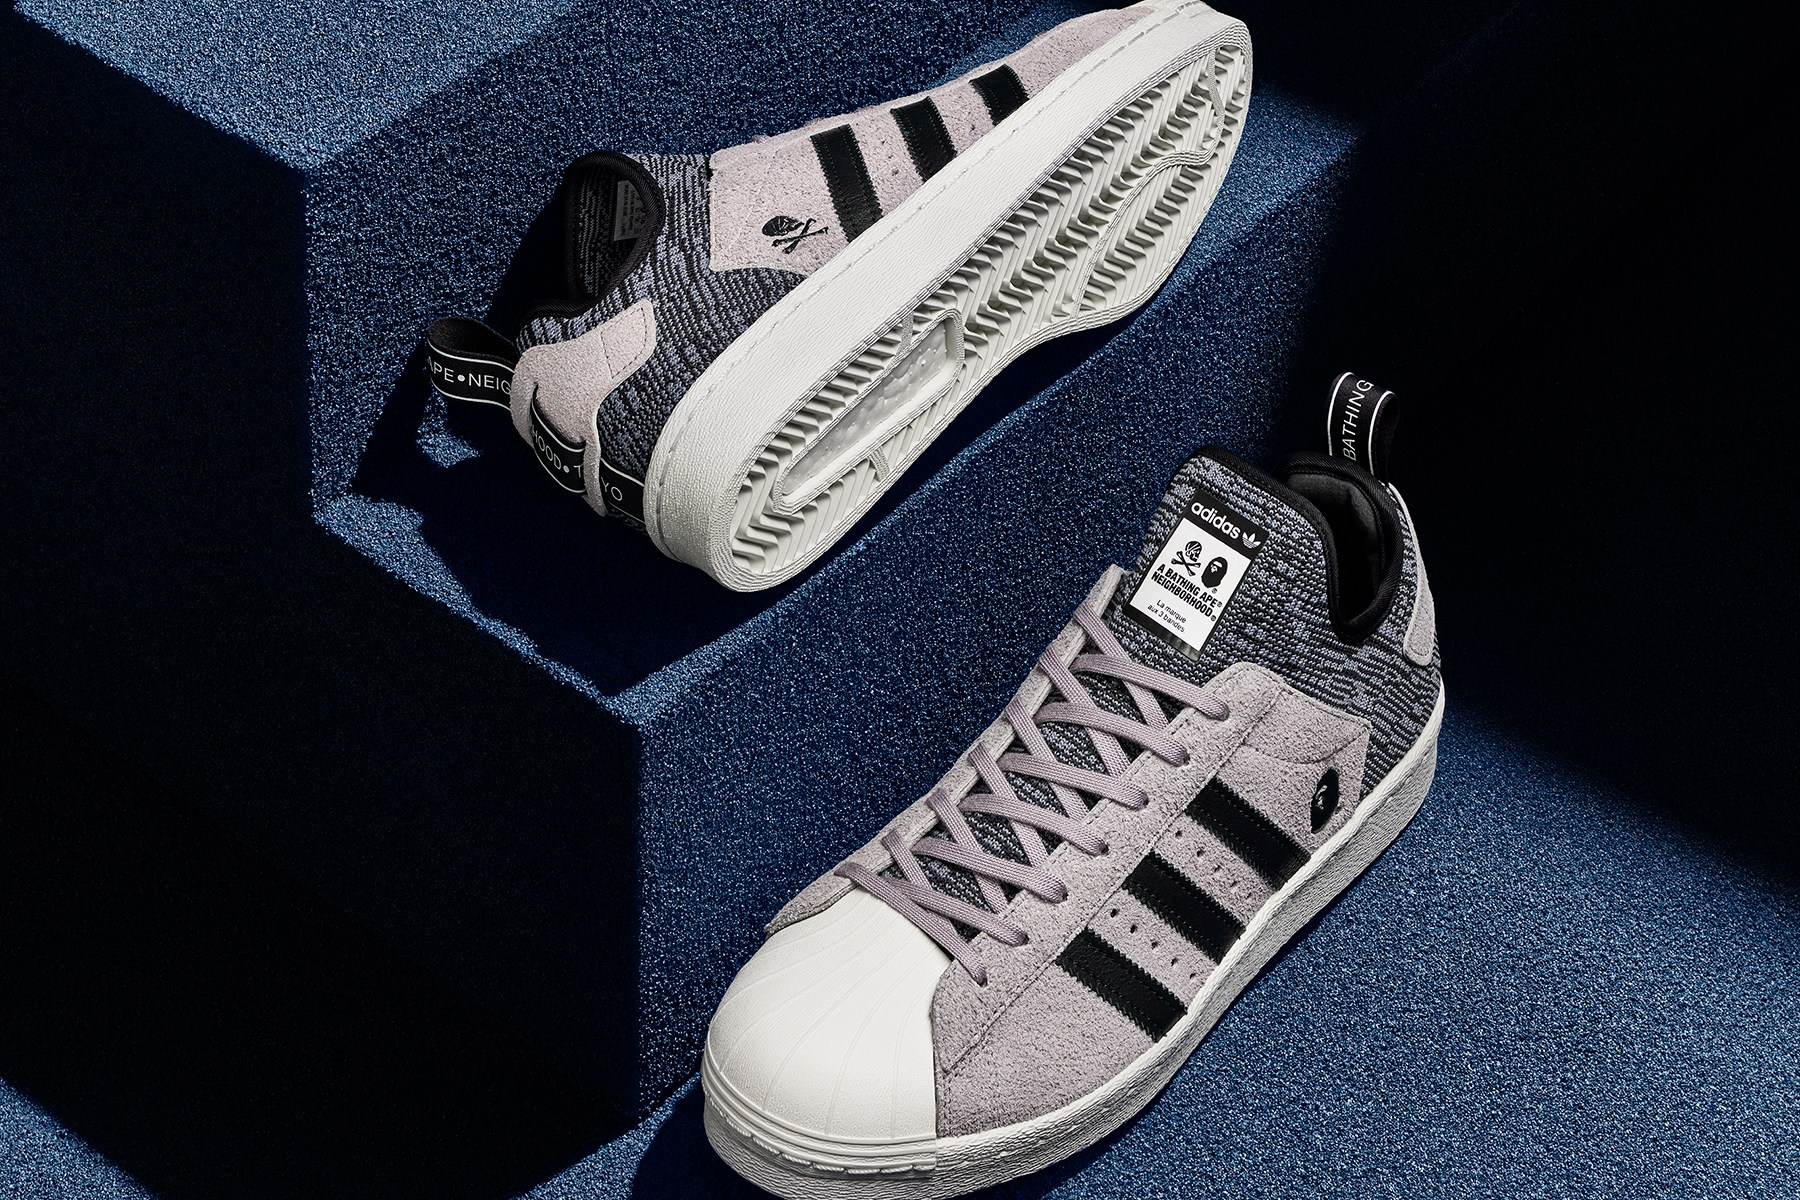 BAPE et NEIGHBORHOOD s'associent avec Adidas